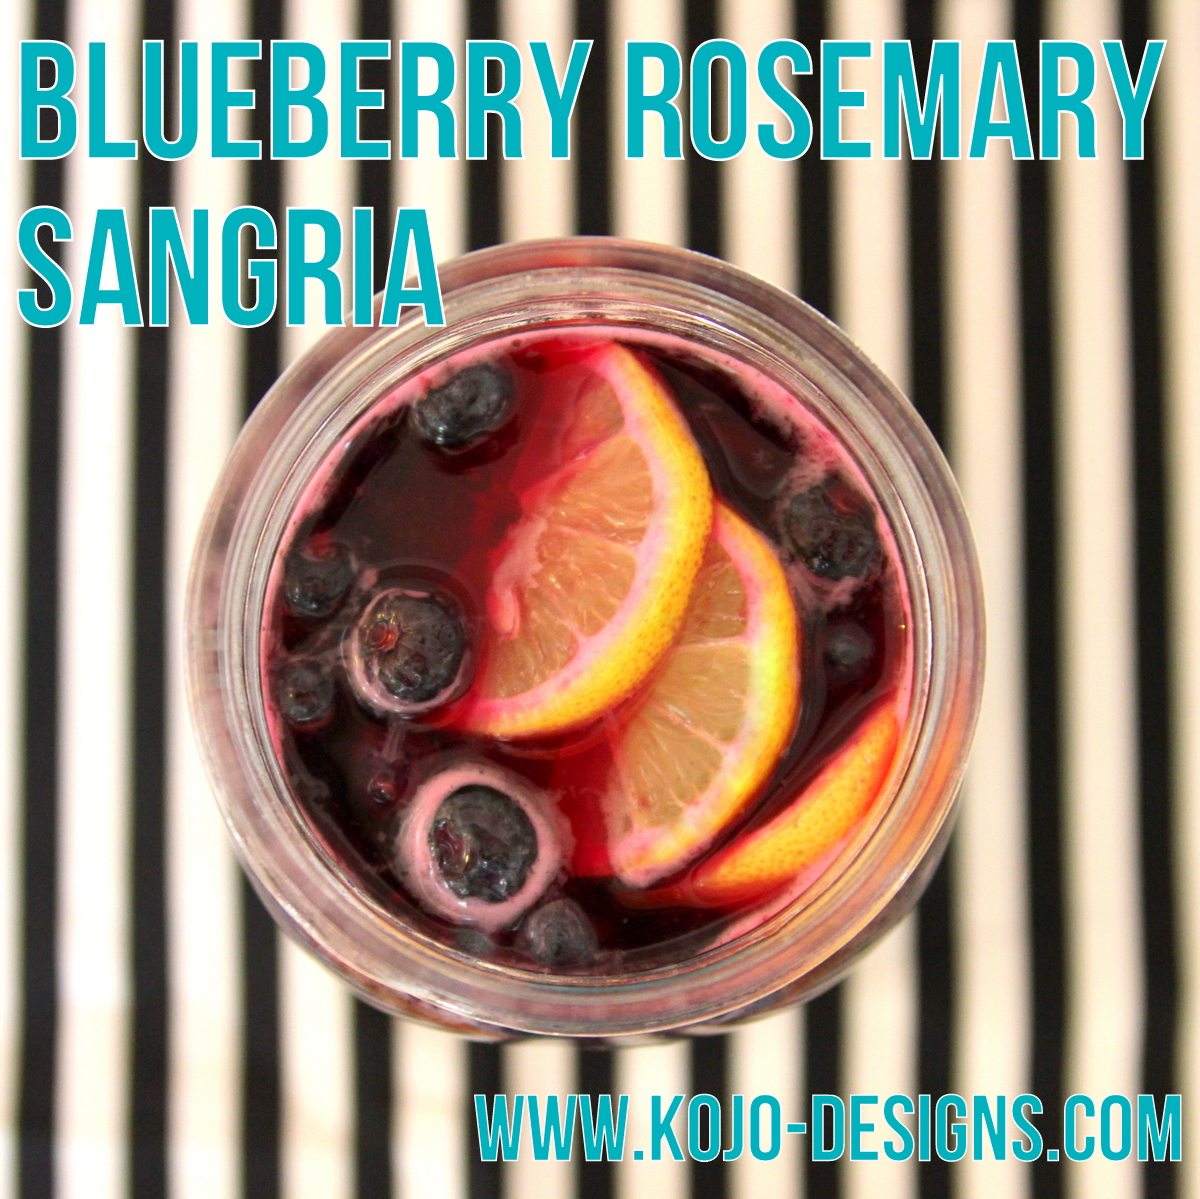 blueberry rosemary sangria recipe